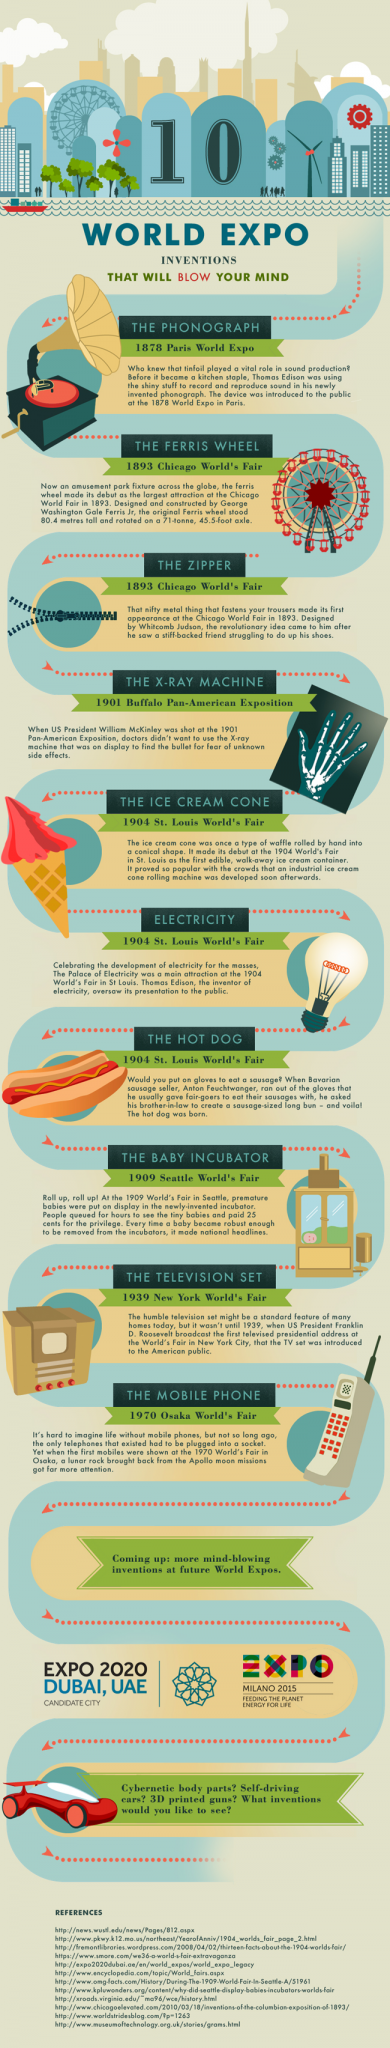 World_Expo_inventions_infographic